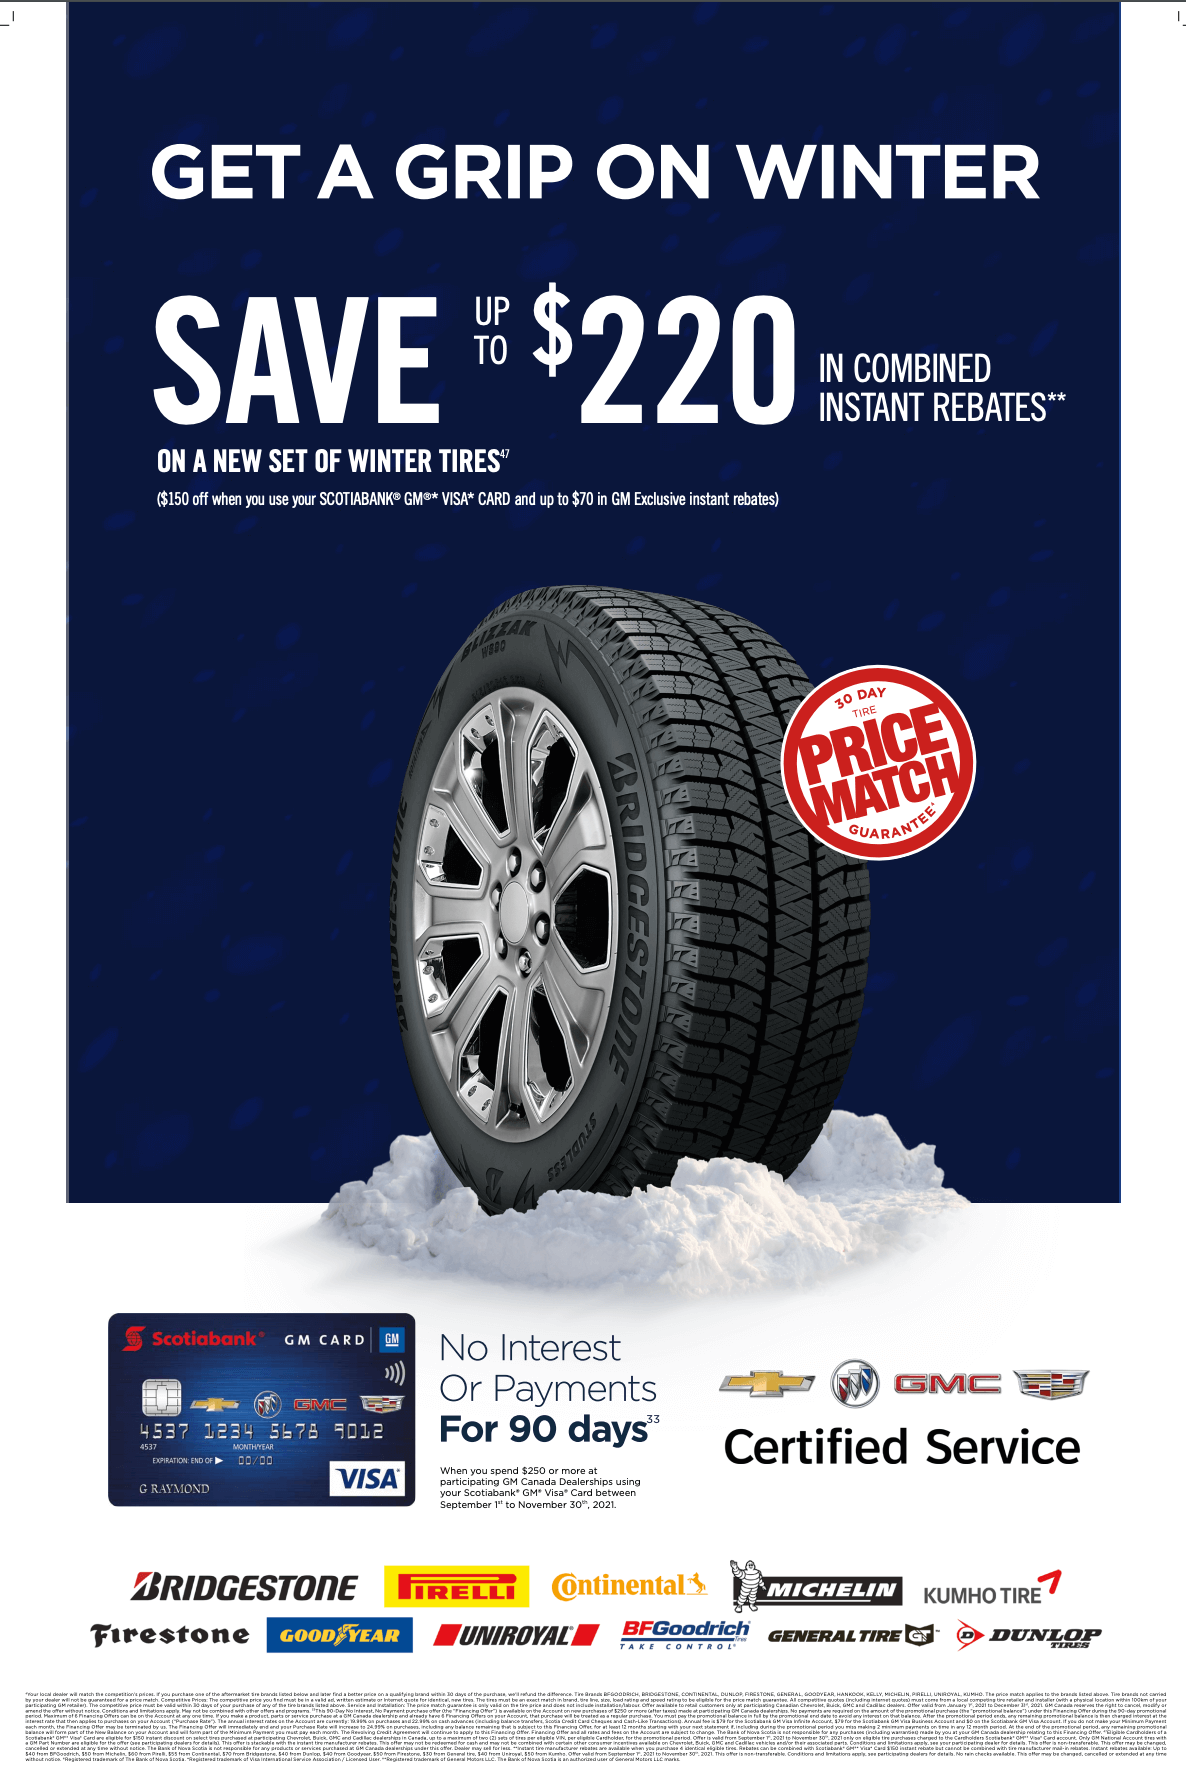 Save $220 on winter tires